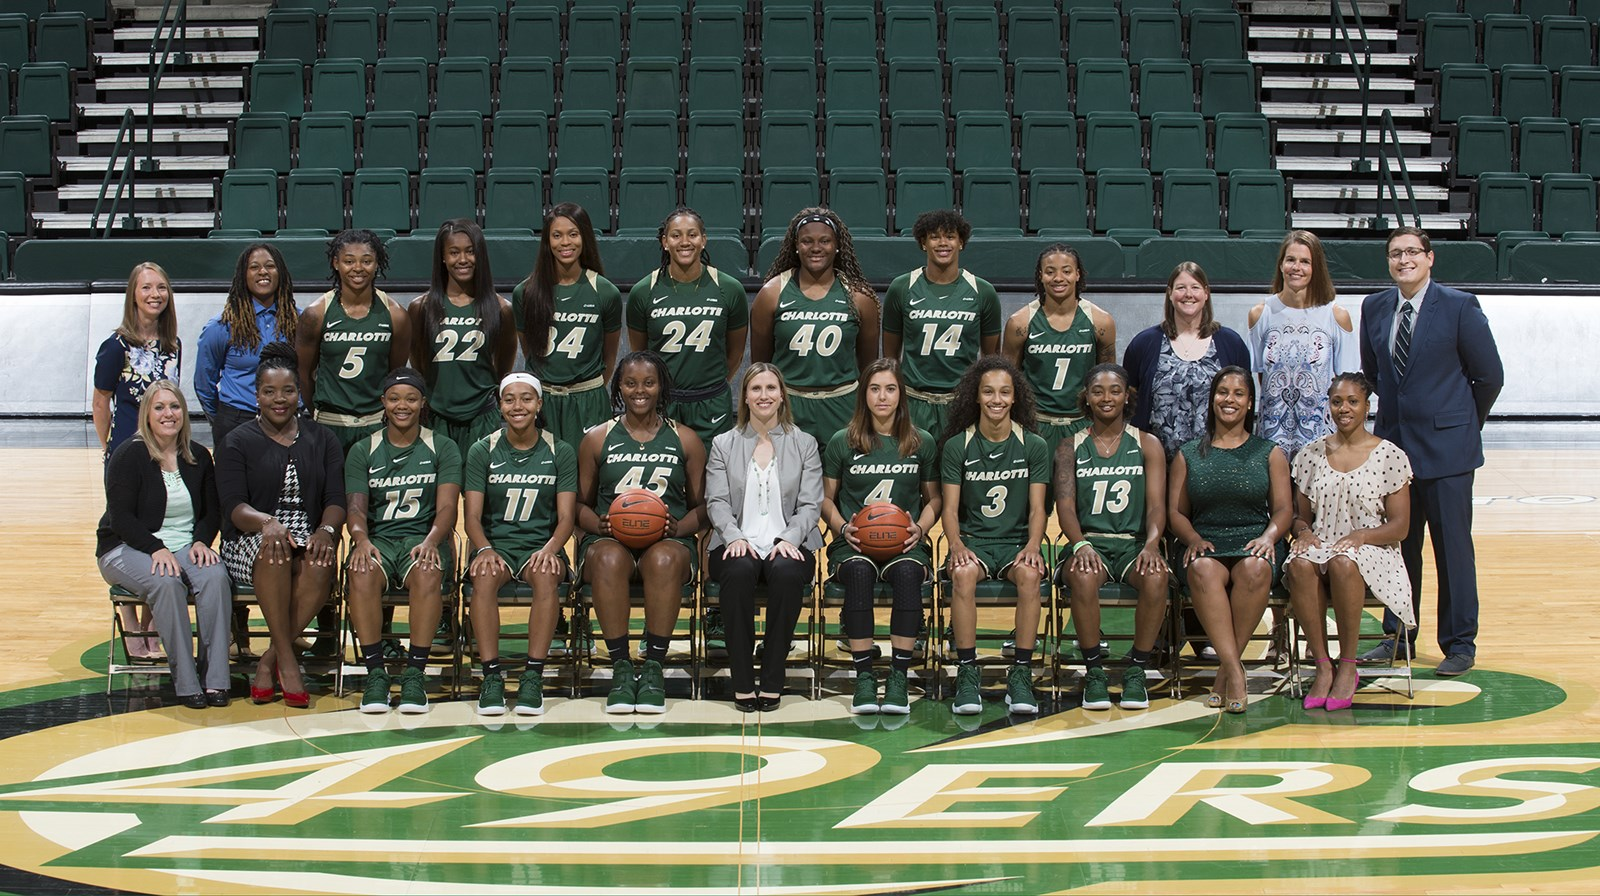 2018 19 Women S Basketball Roster Unc Charlotte Athletics